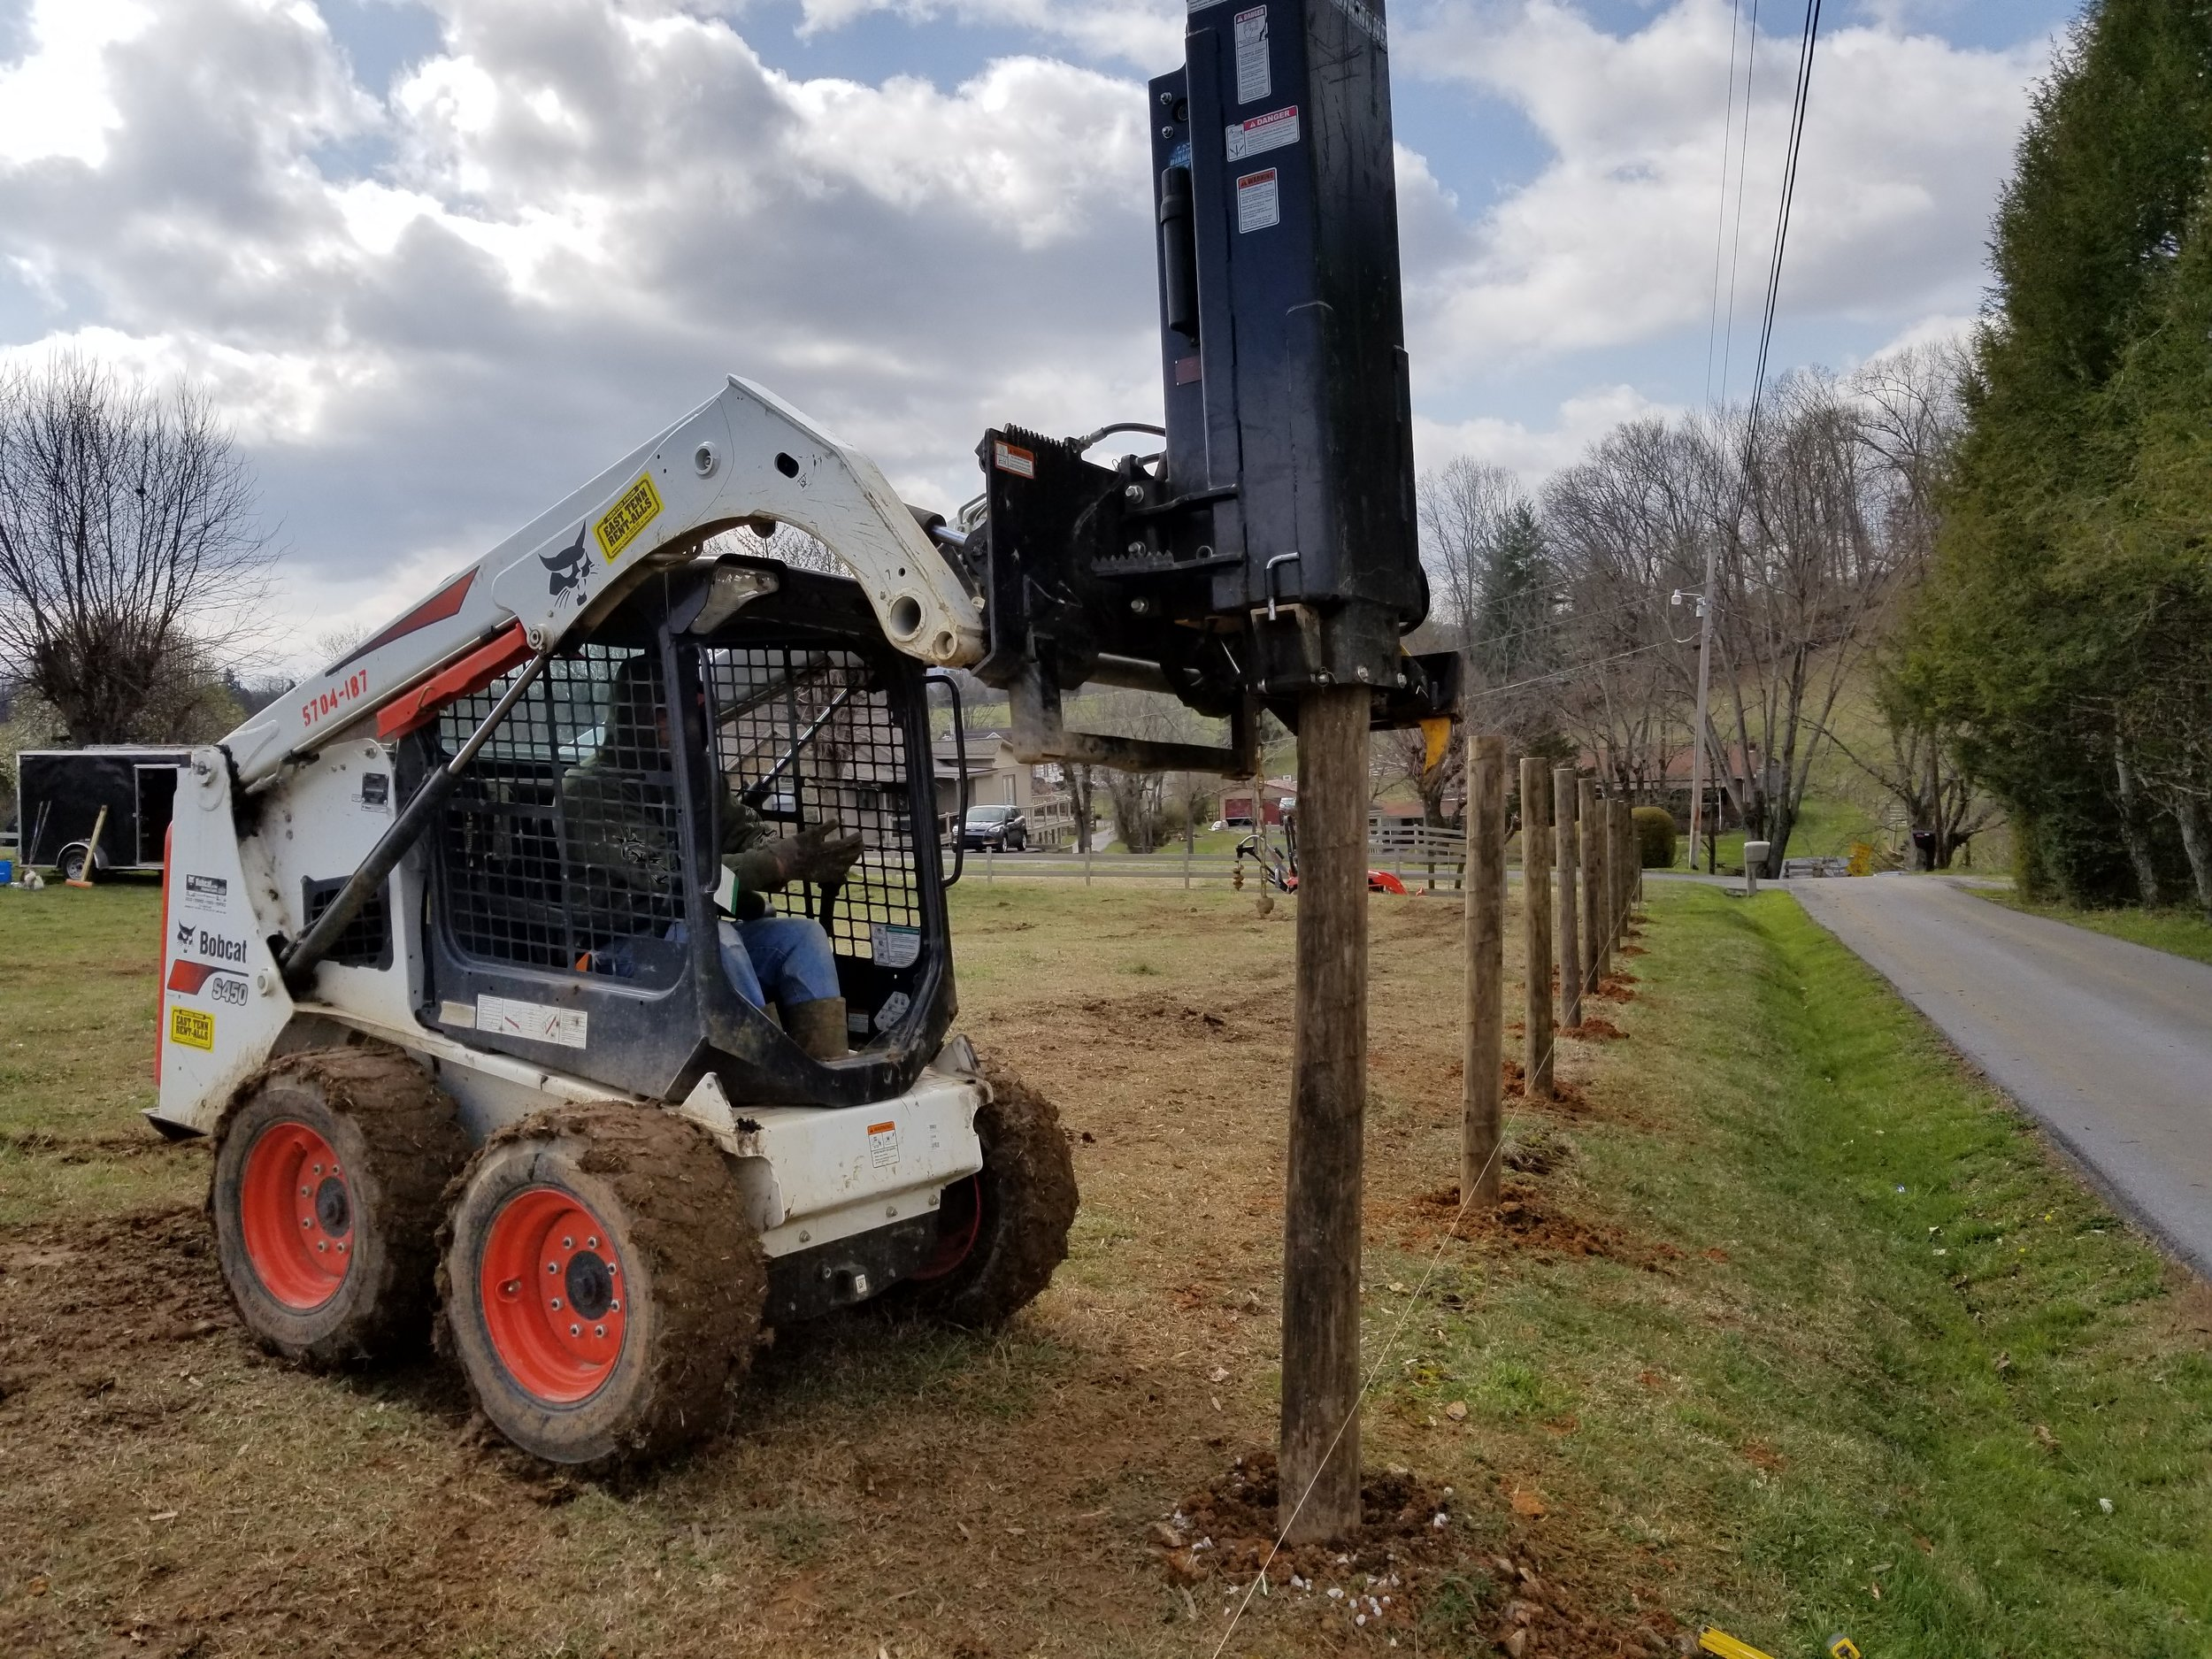 Cattle Fence, Bobcat Pile Driver in Use (Johnson City, Tn)